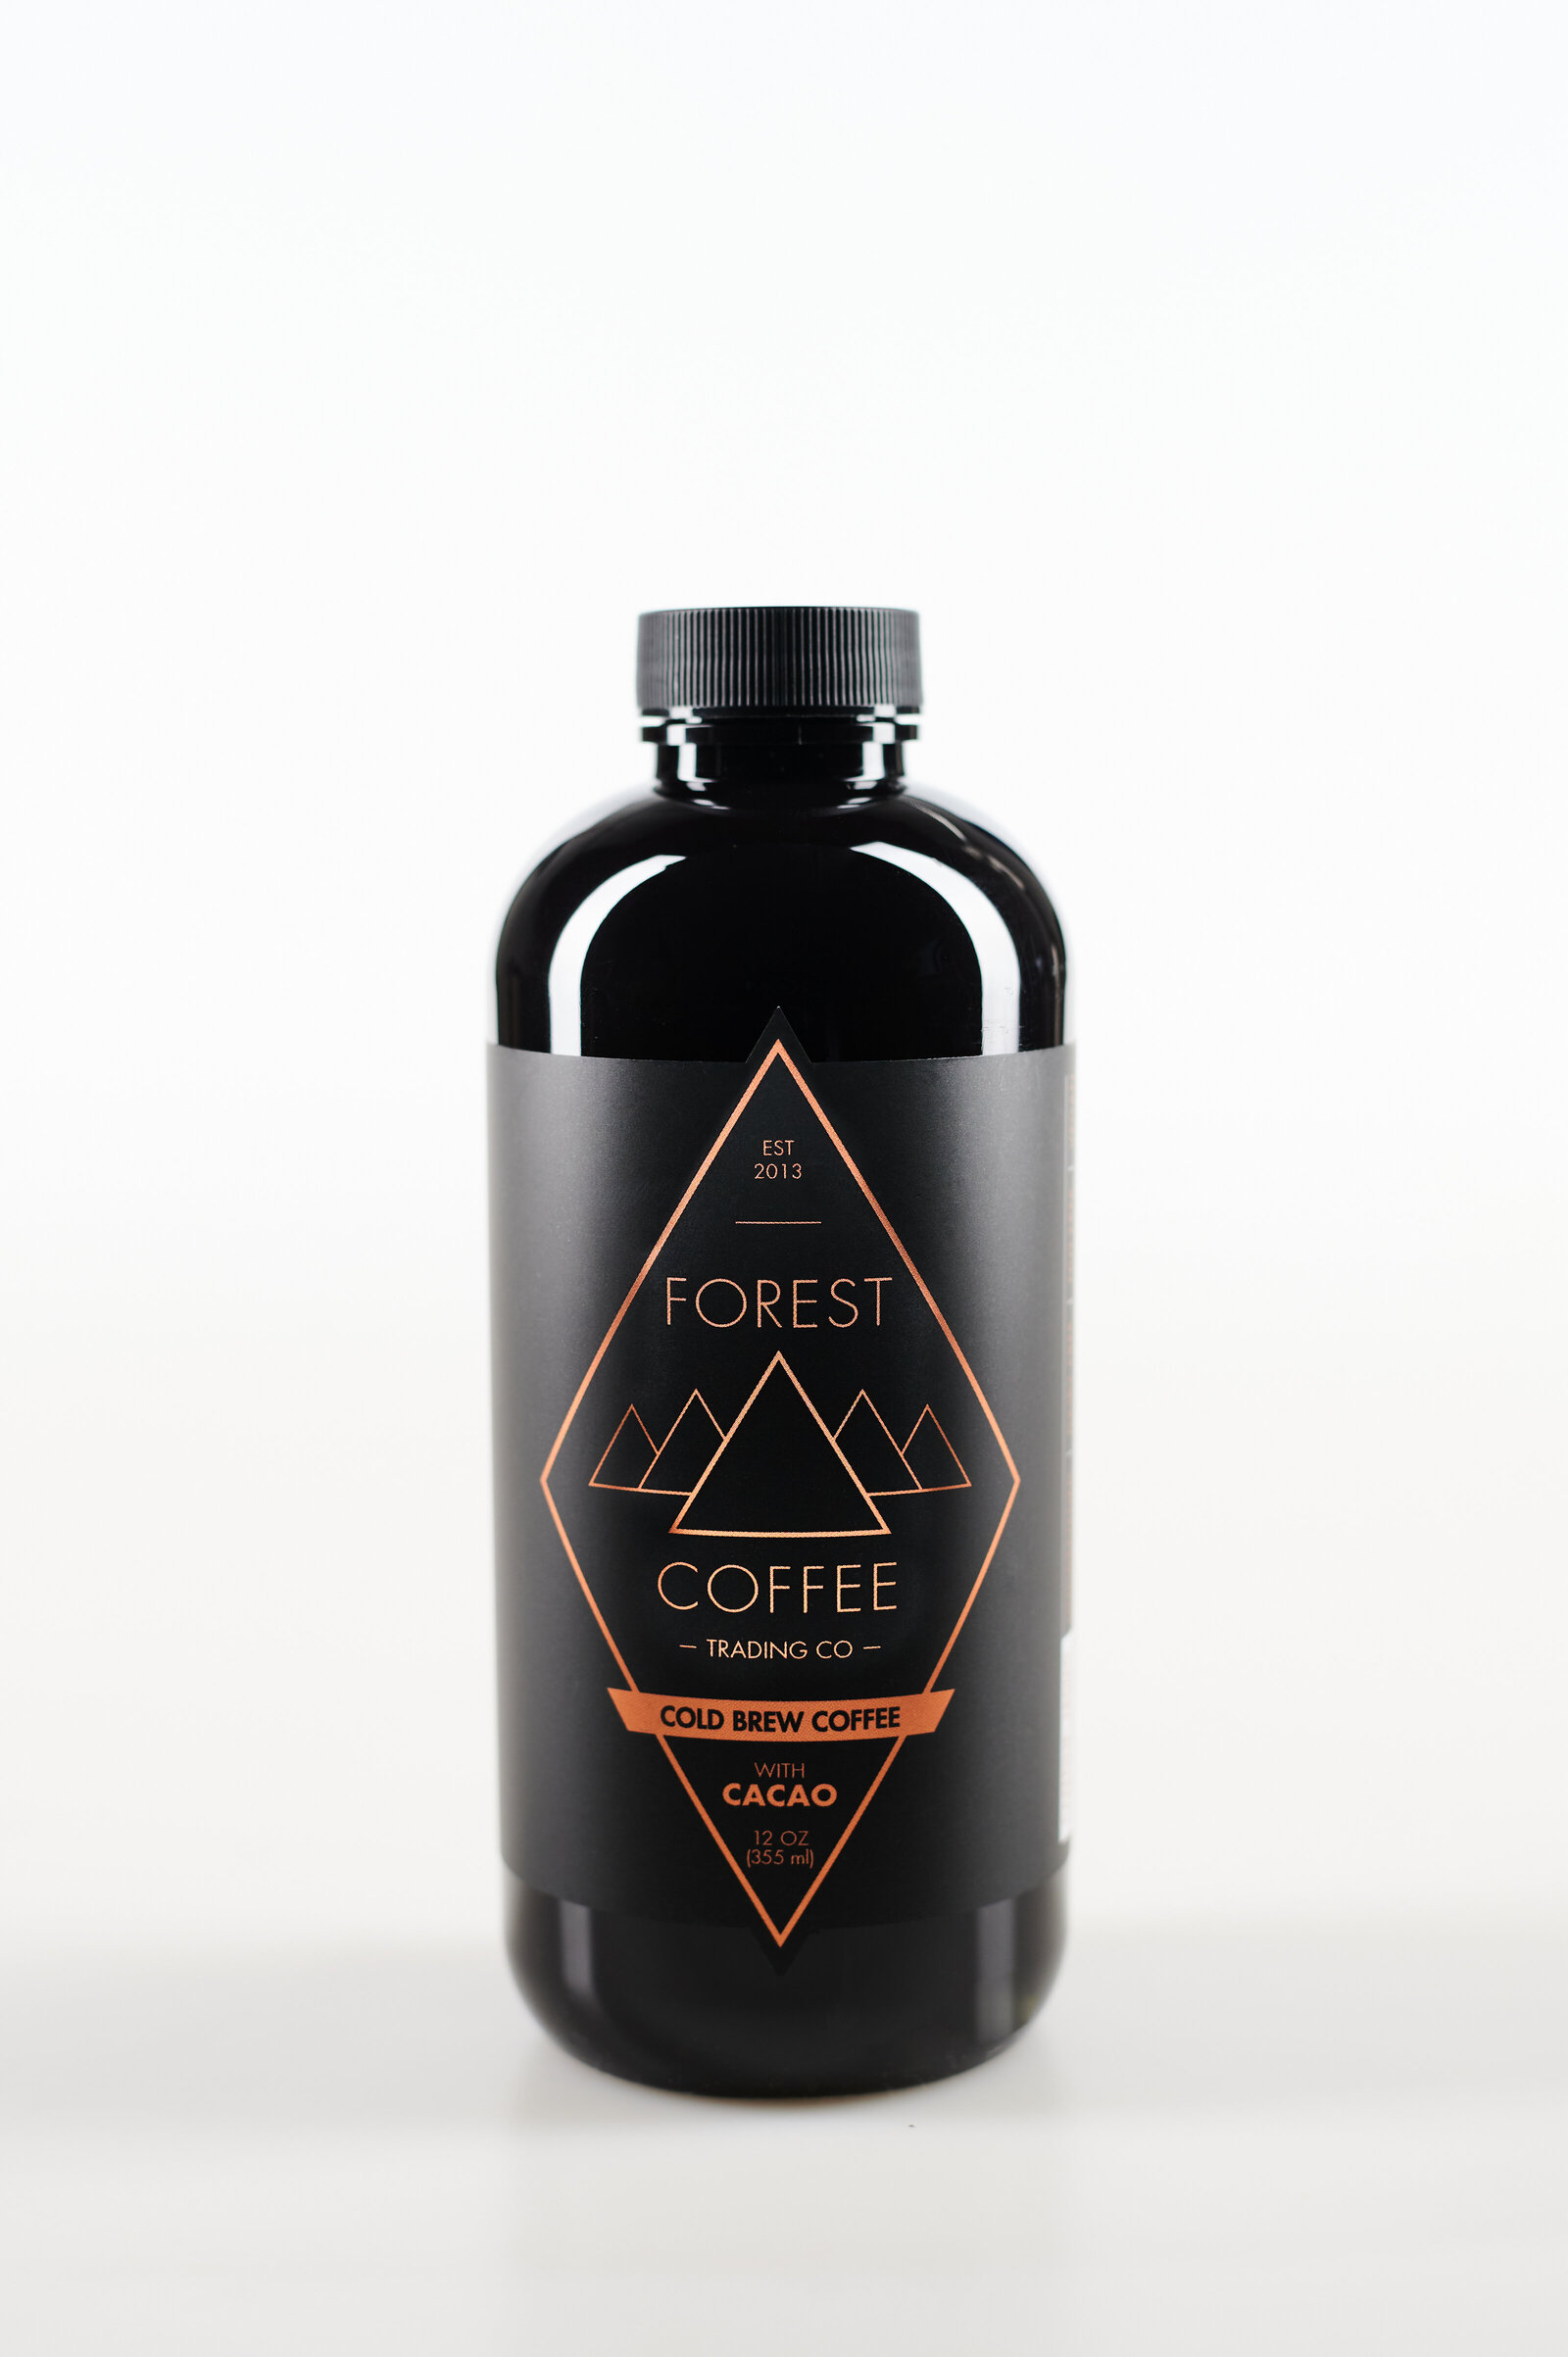 Forest Cold Brew04610